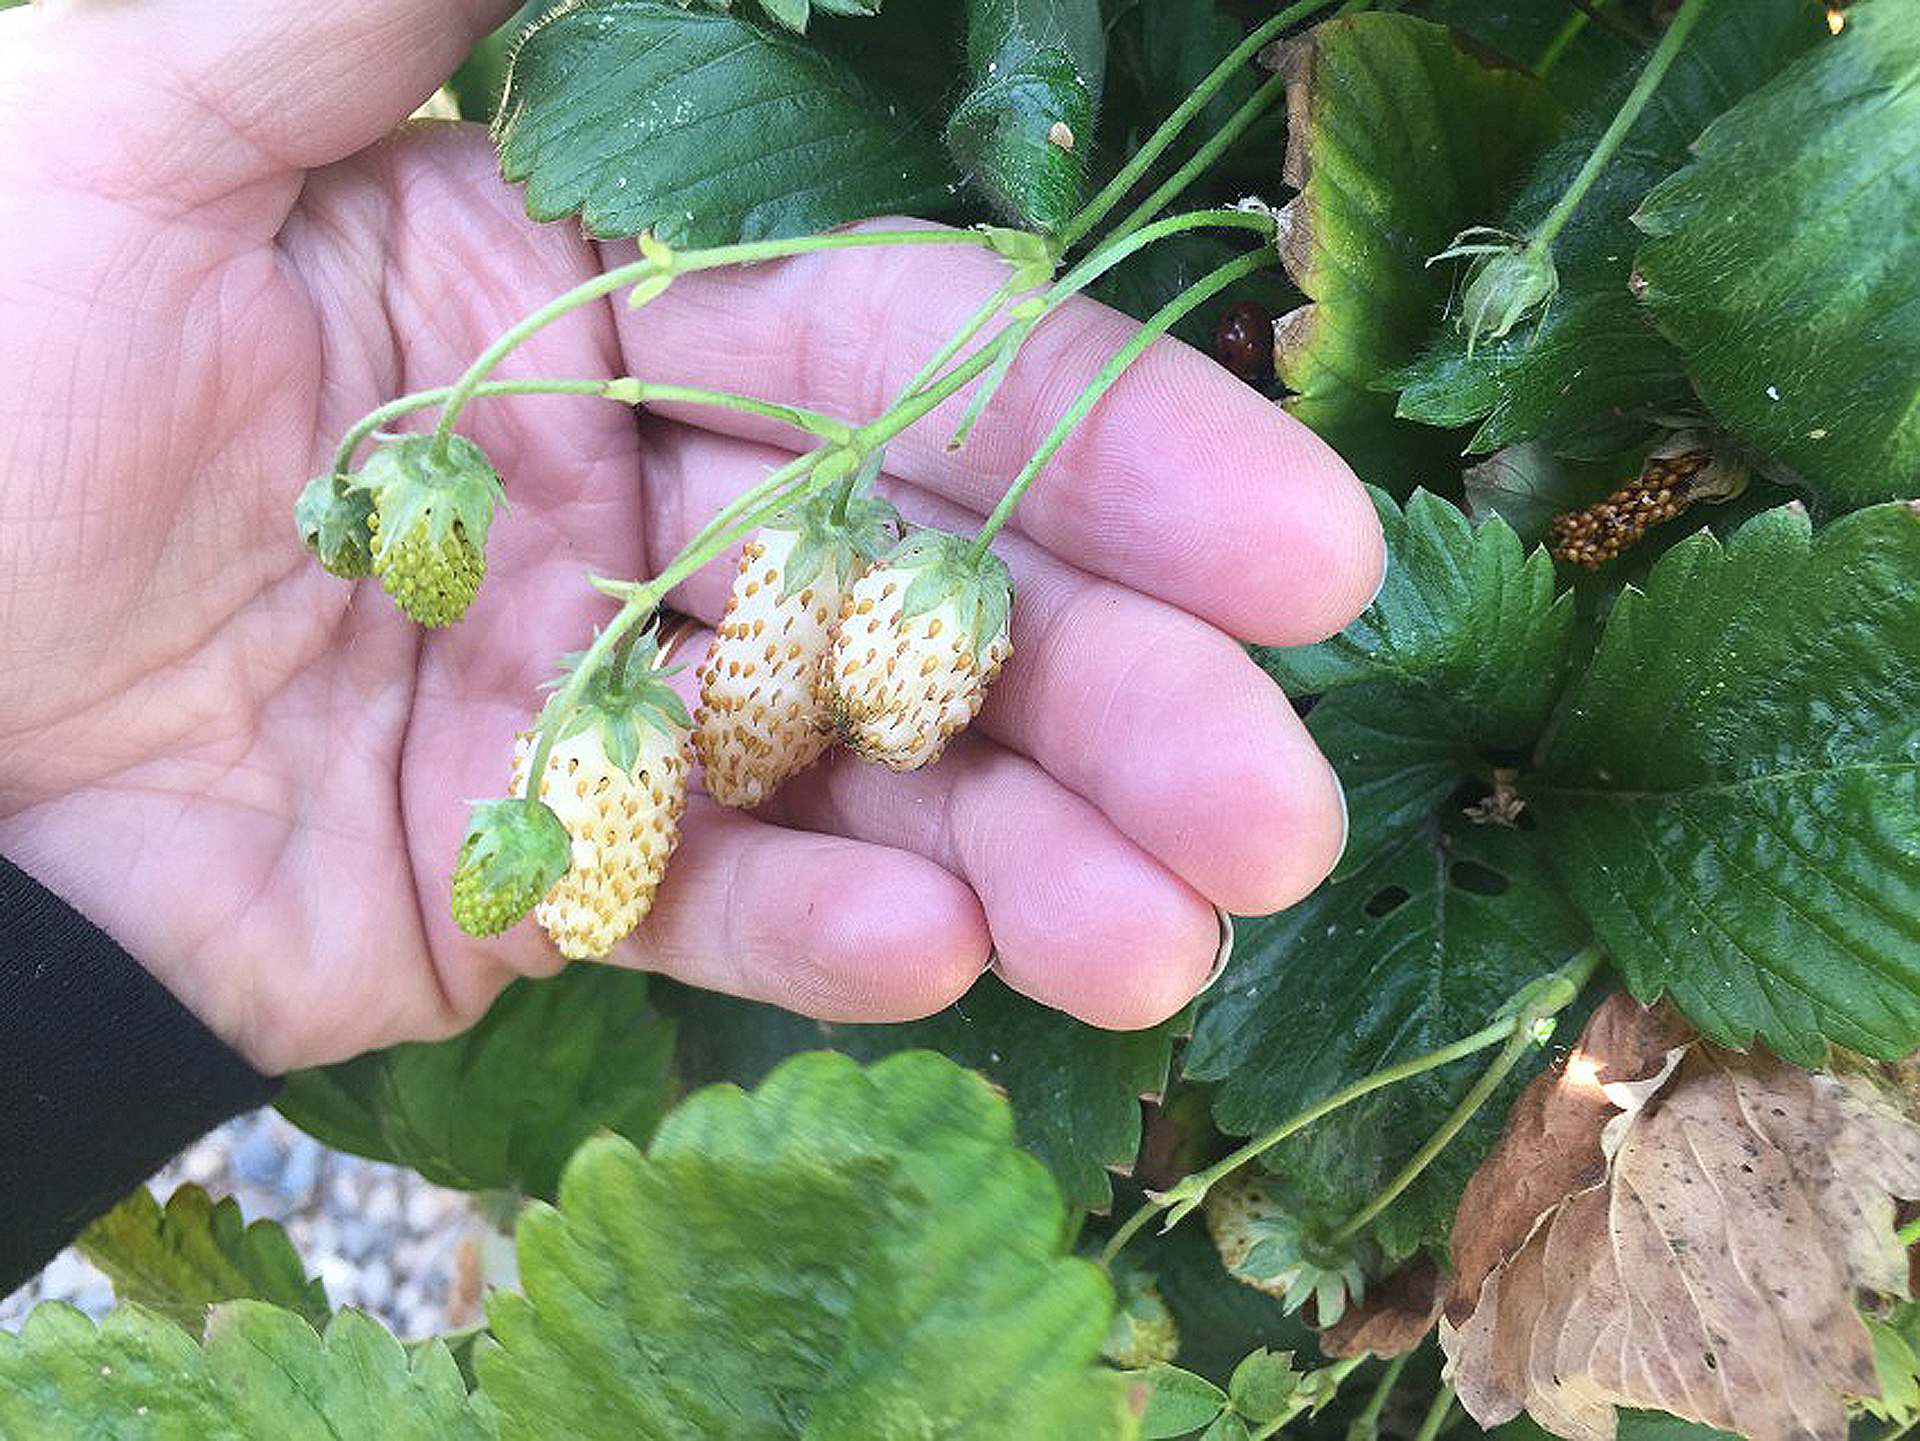 Pinky-sized white and pale yellow fraises des bois could be the most delicious strawberries grown but are exceedingly difficult to find for sale so some berry lovers plant them in their yards.